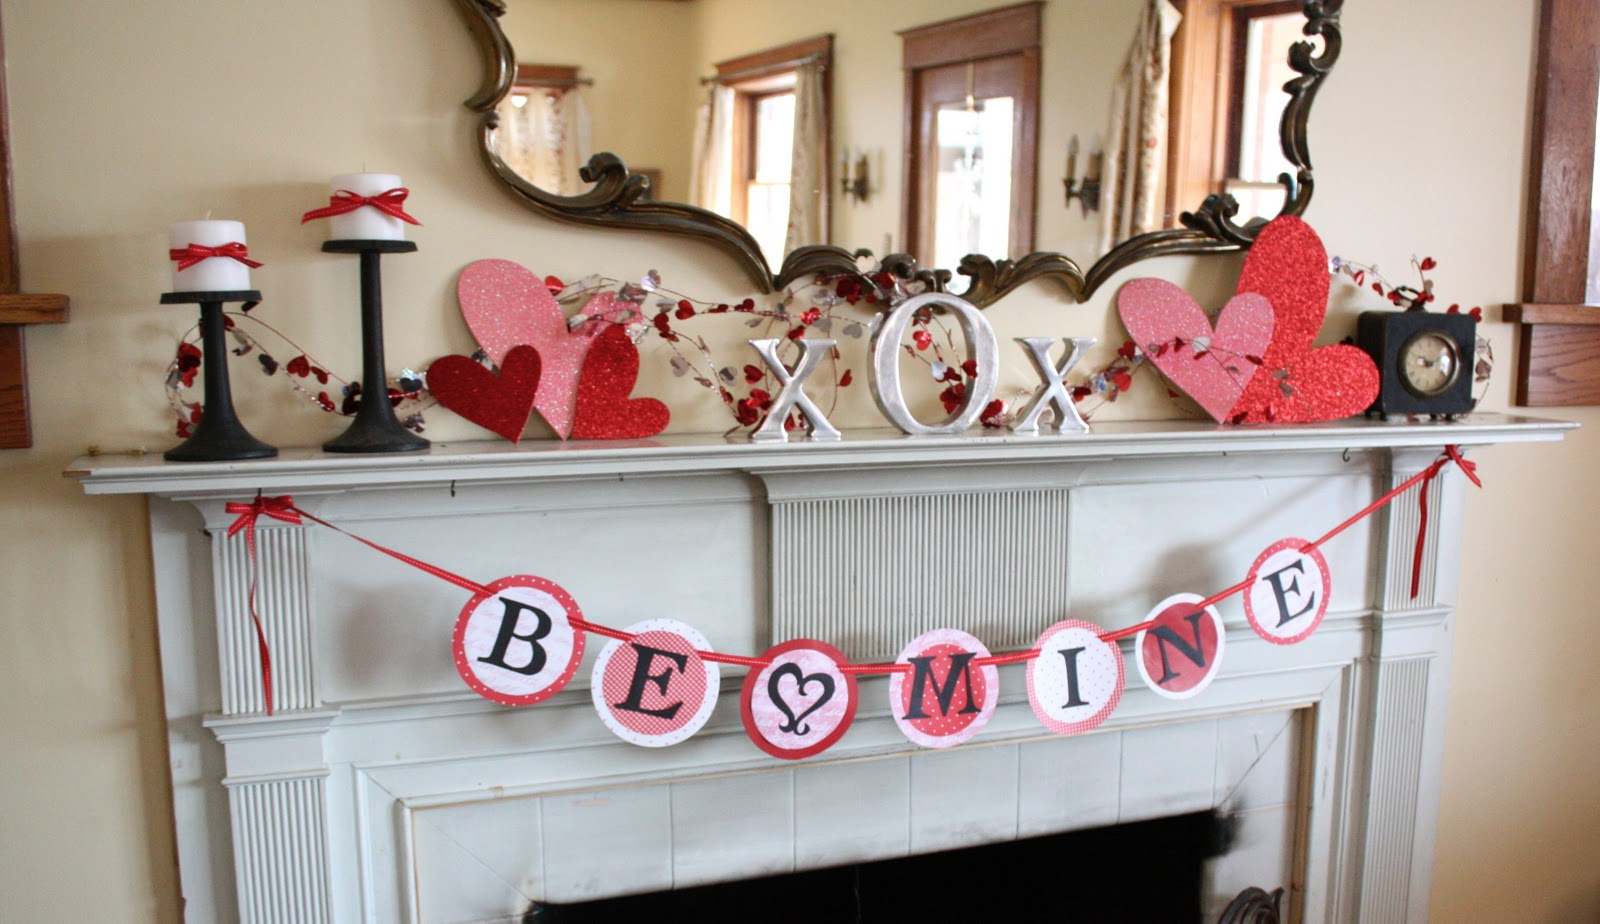 Valentine 39 s day decorations ideas 2014 to decorate bedroom for B day decoration ideas